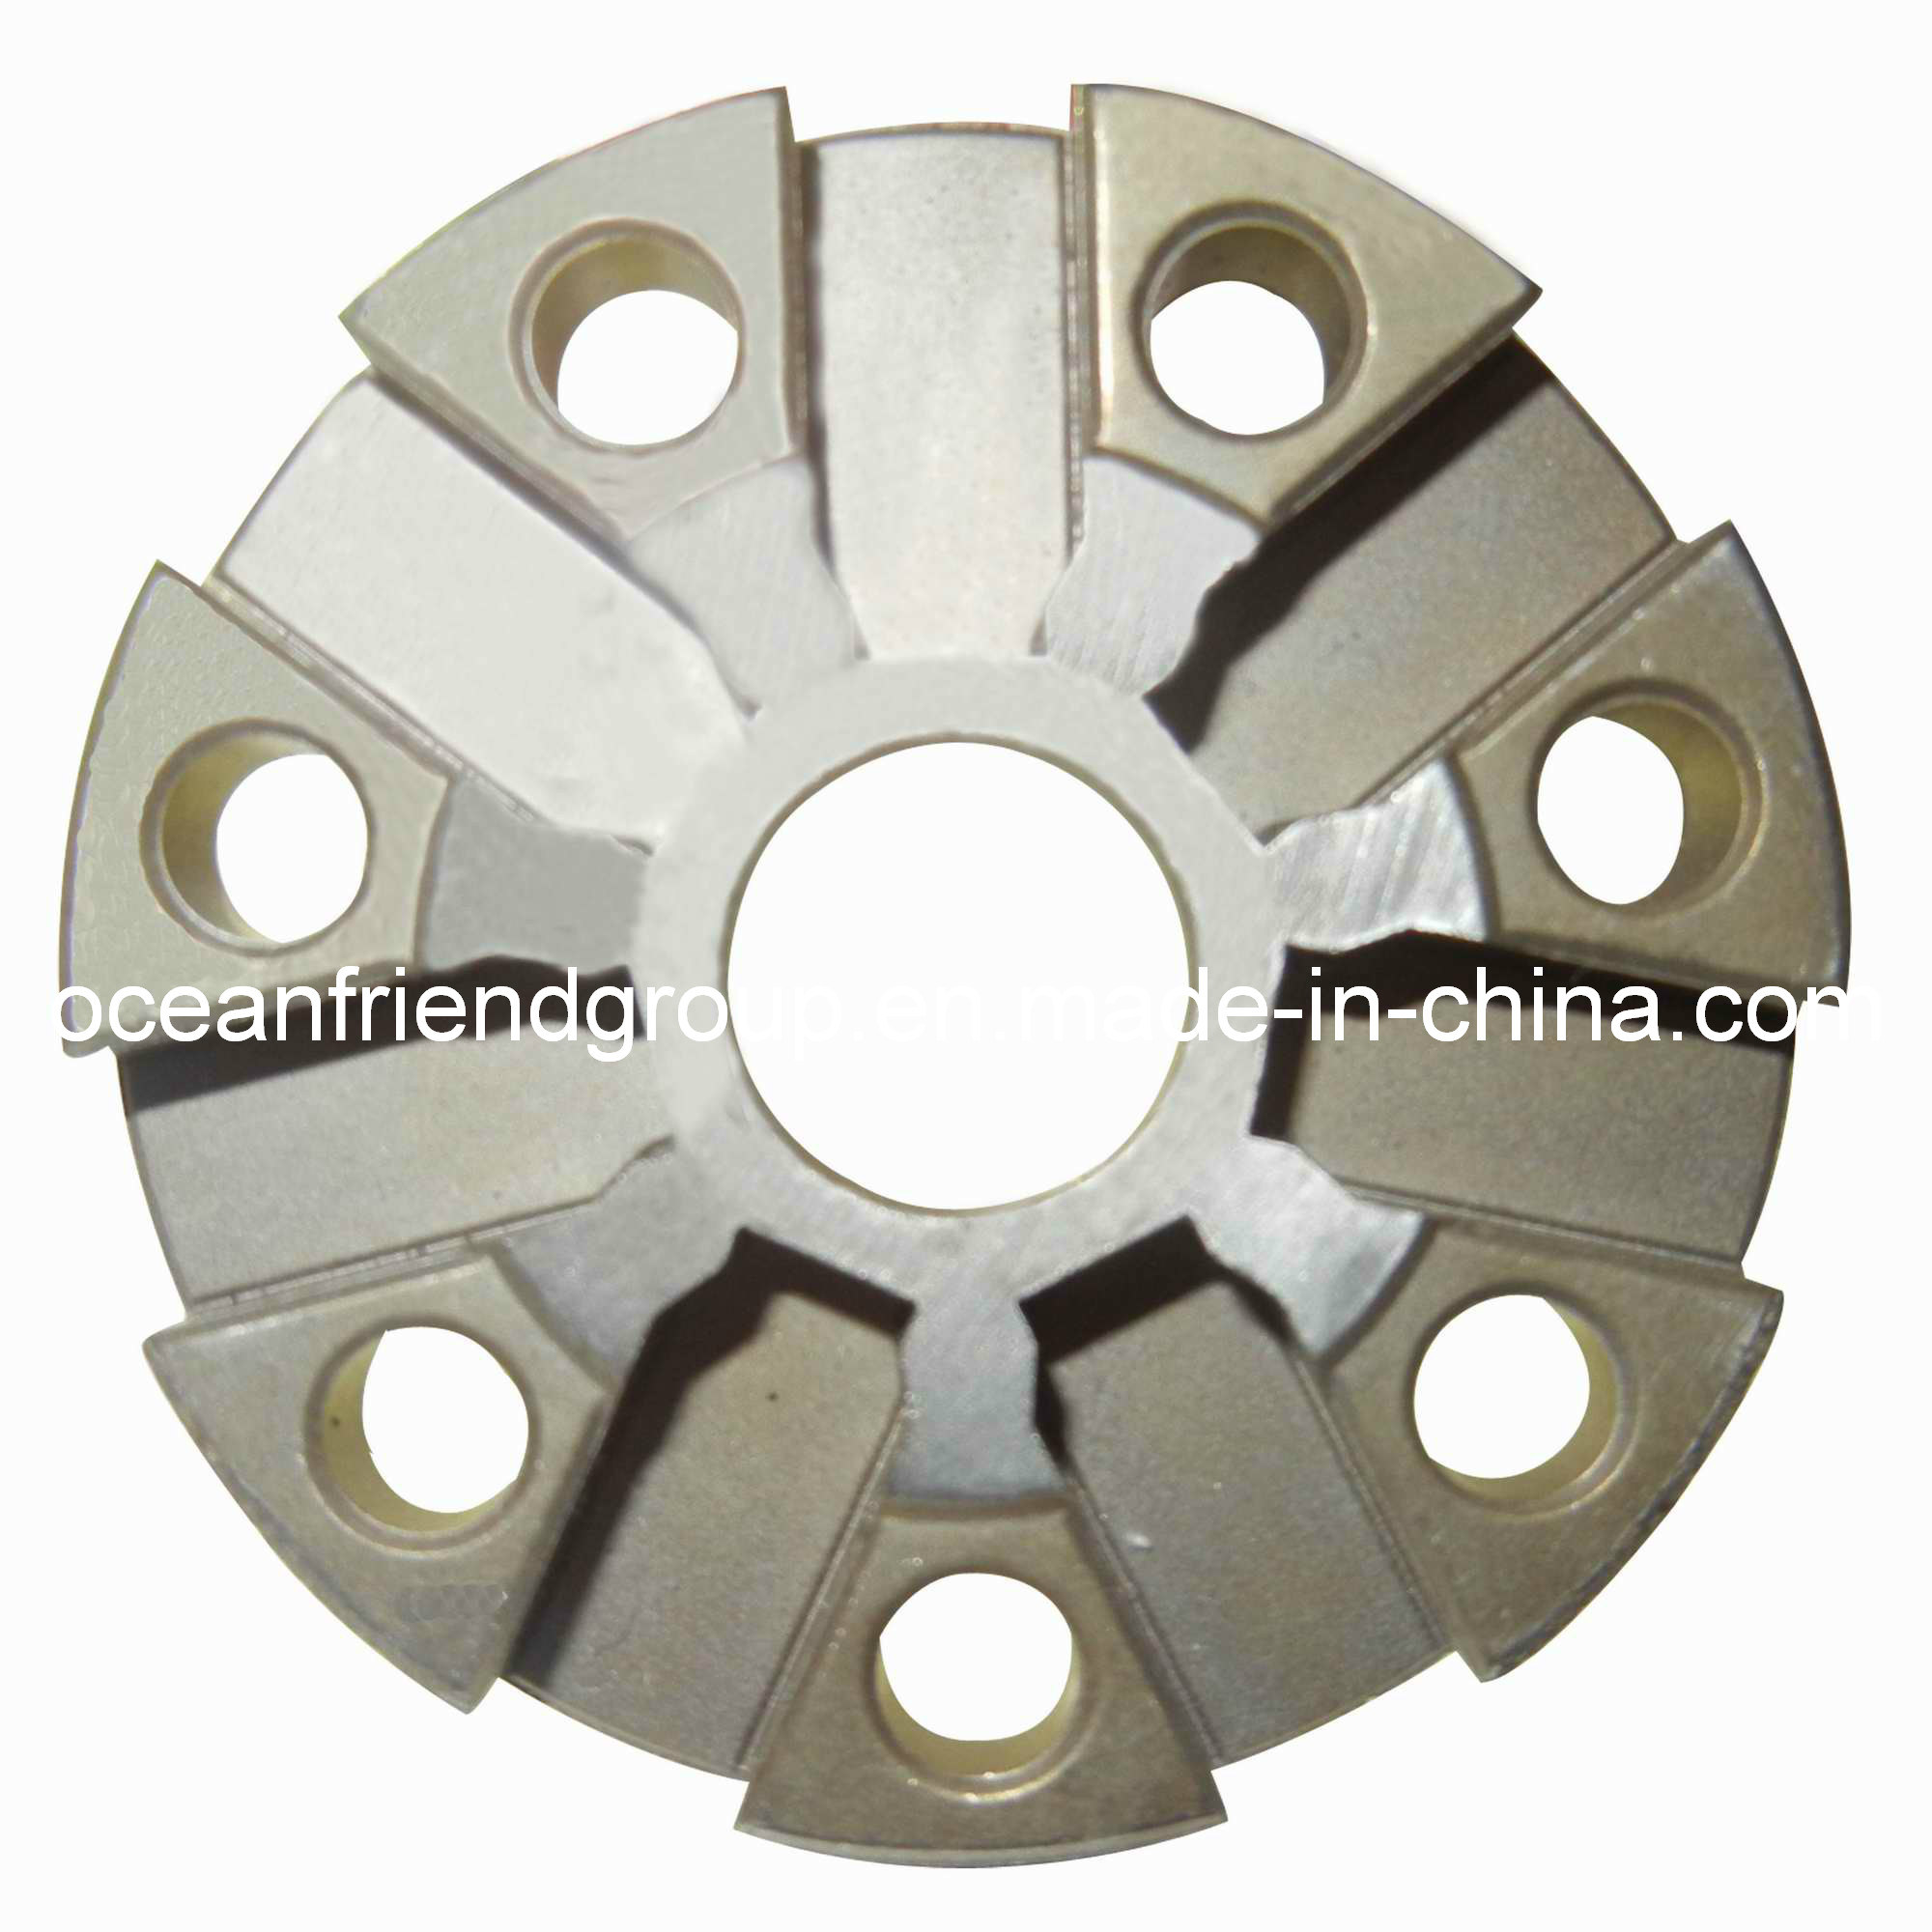 Sintered Metal Parts for Power Tools